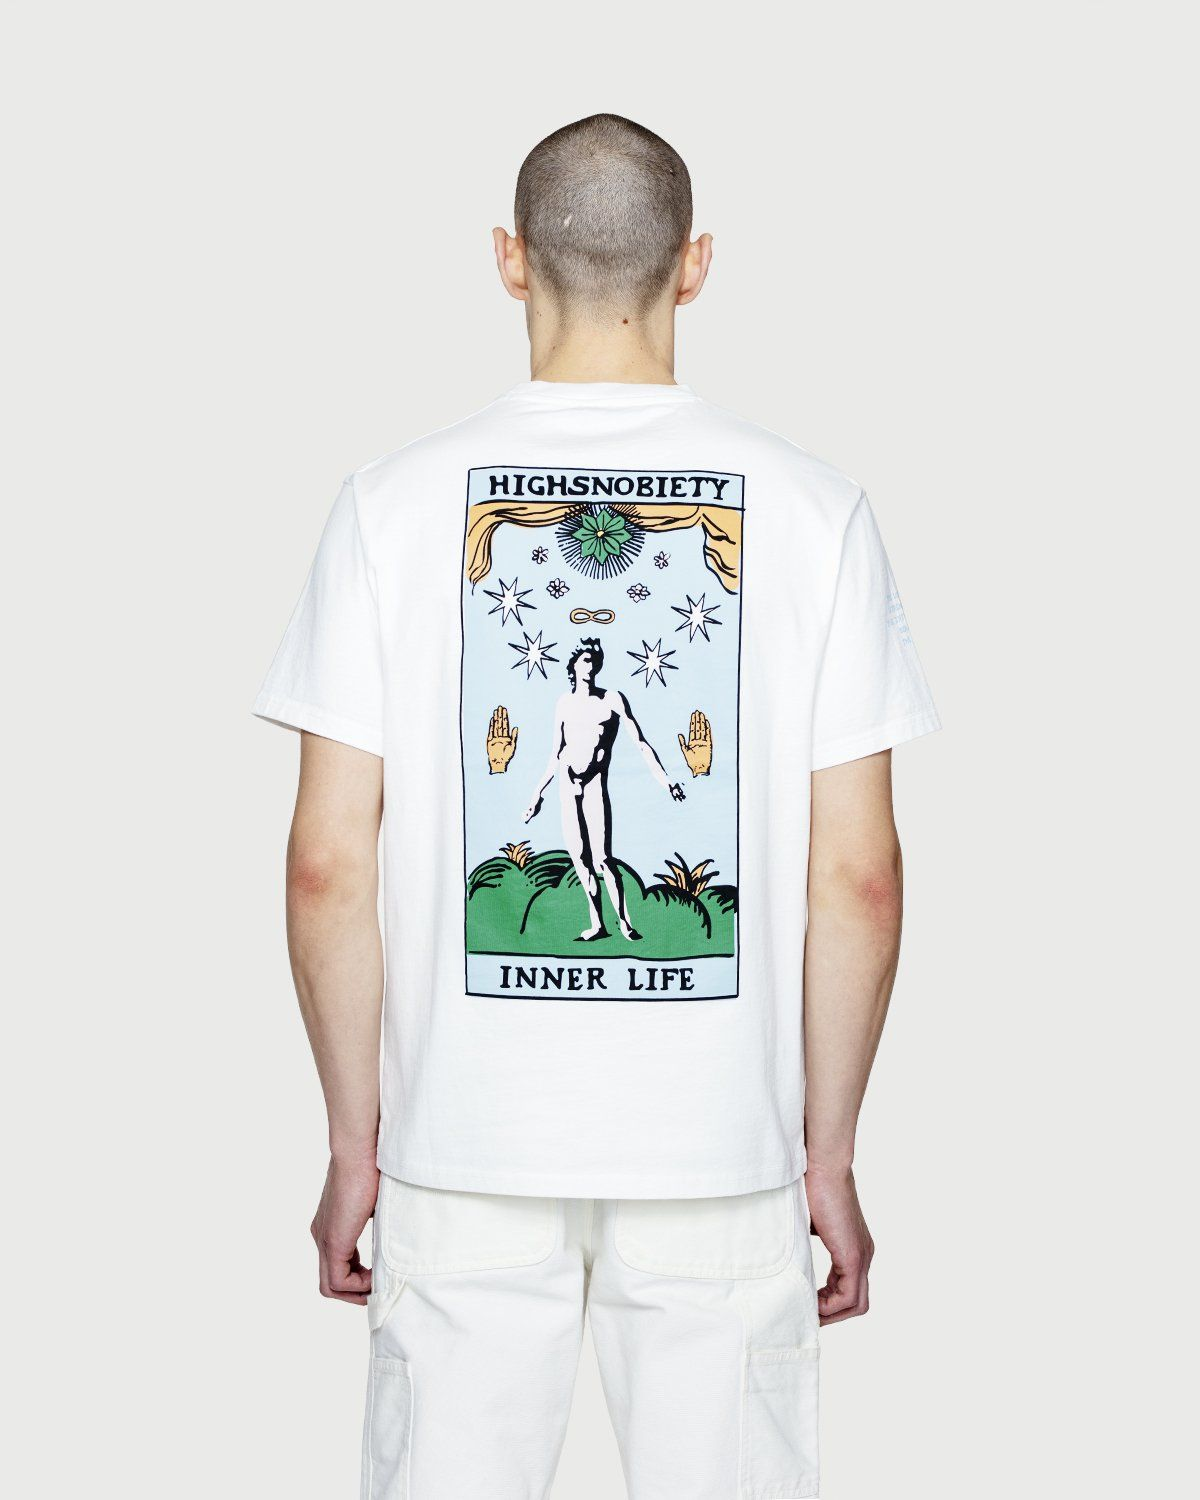 Inner Life by Highsnobiety - The Beauty T-Shirt White - Image 7